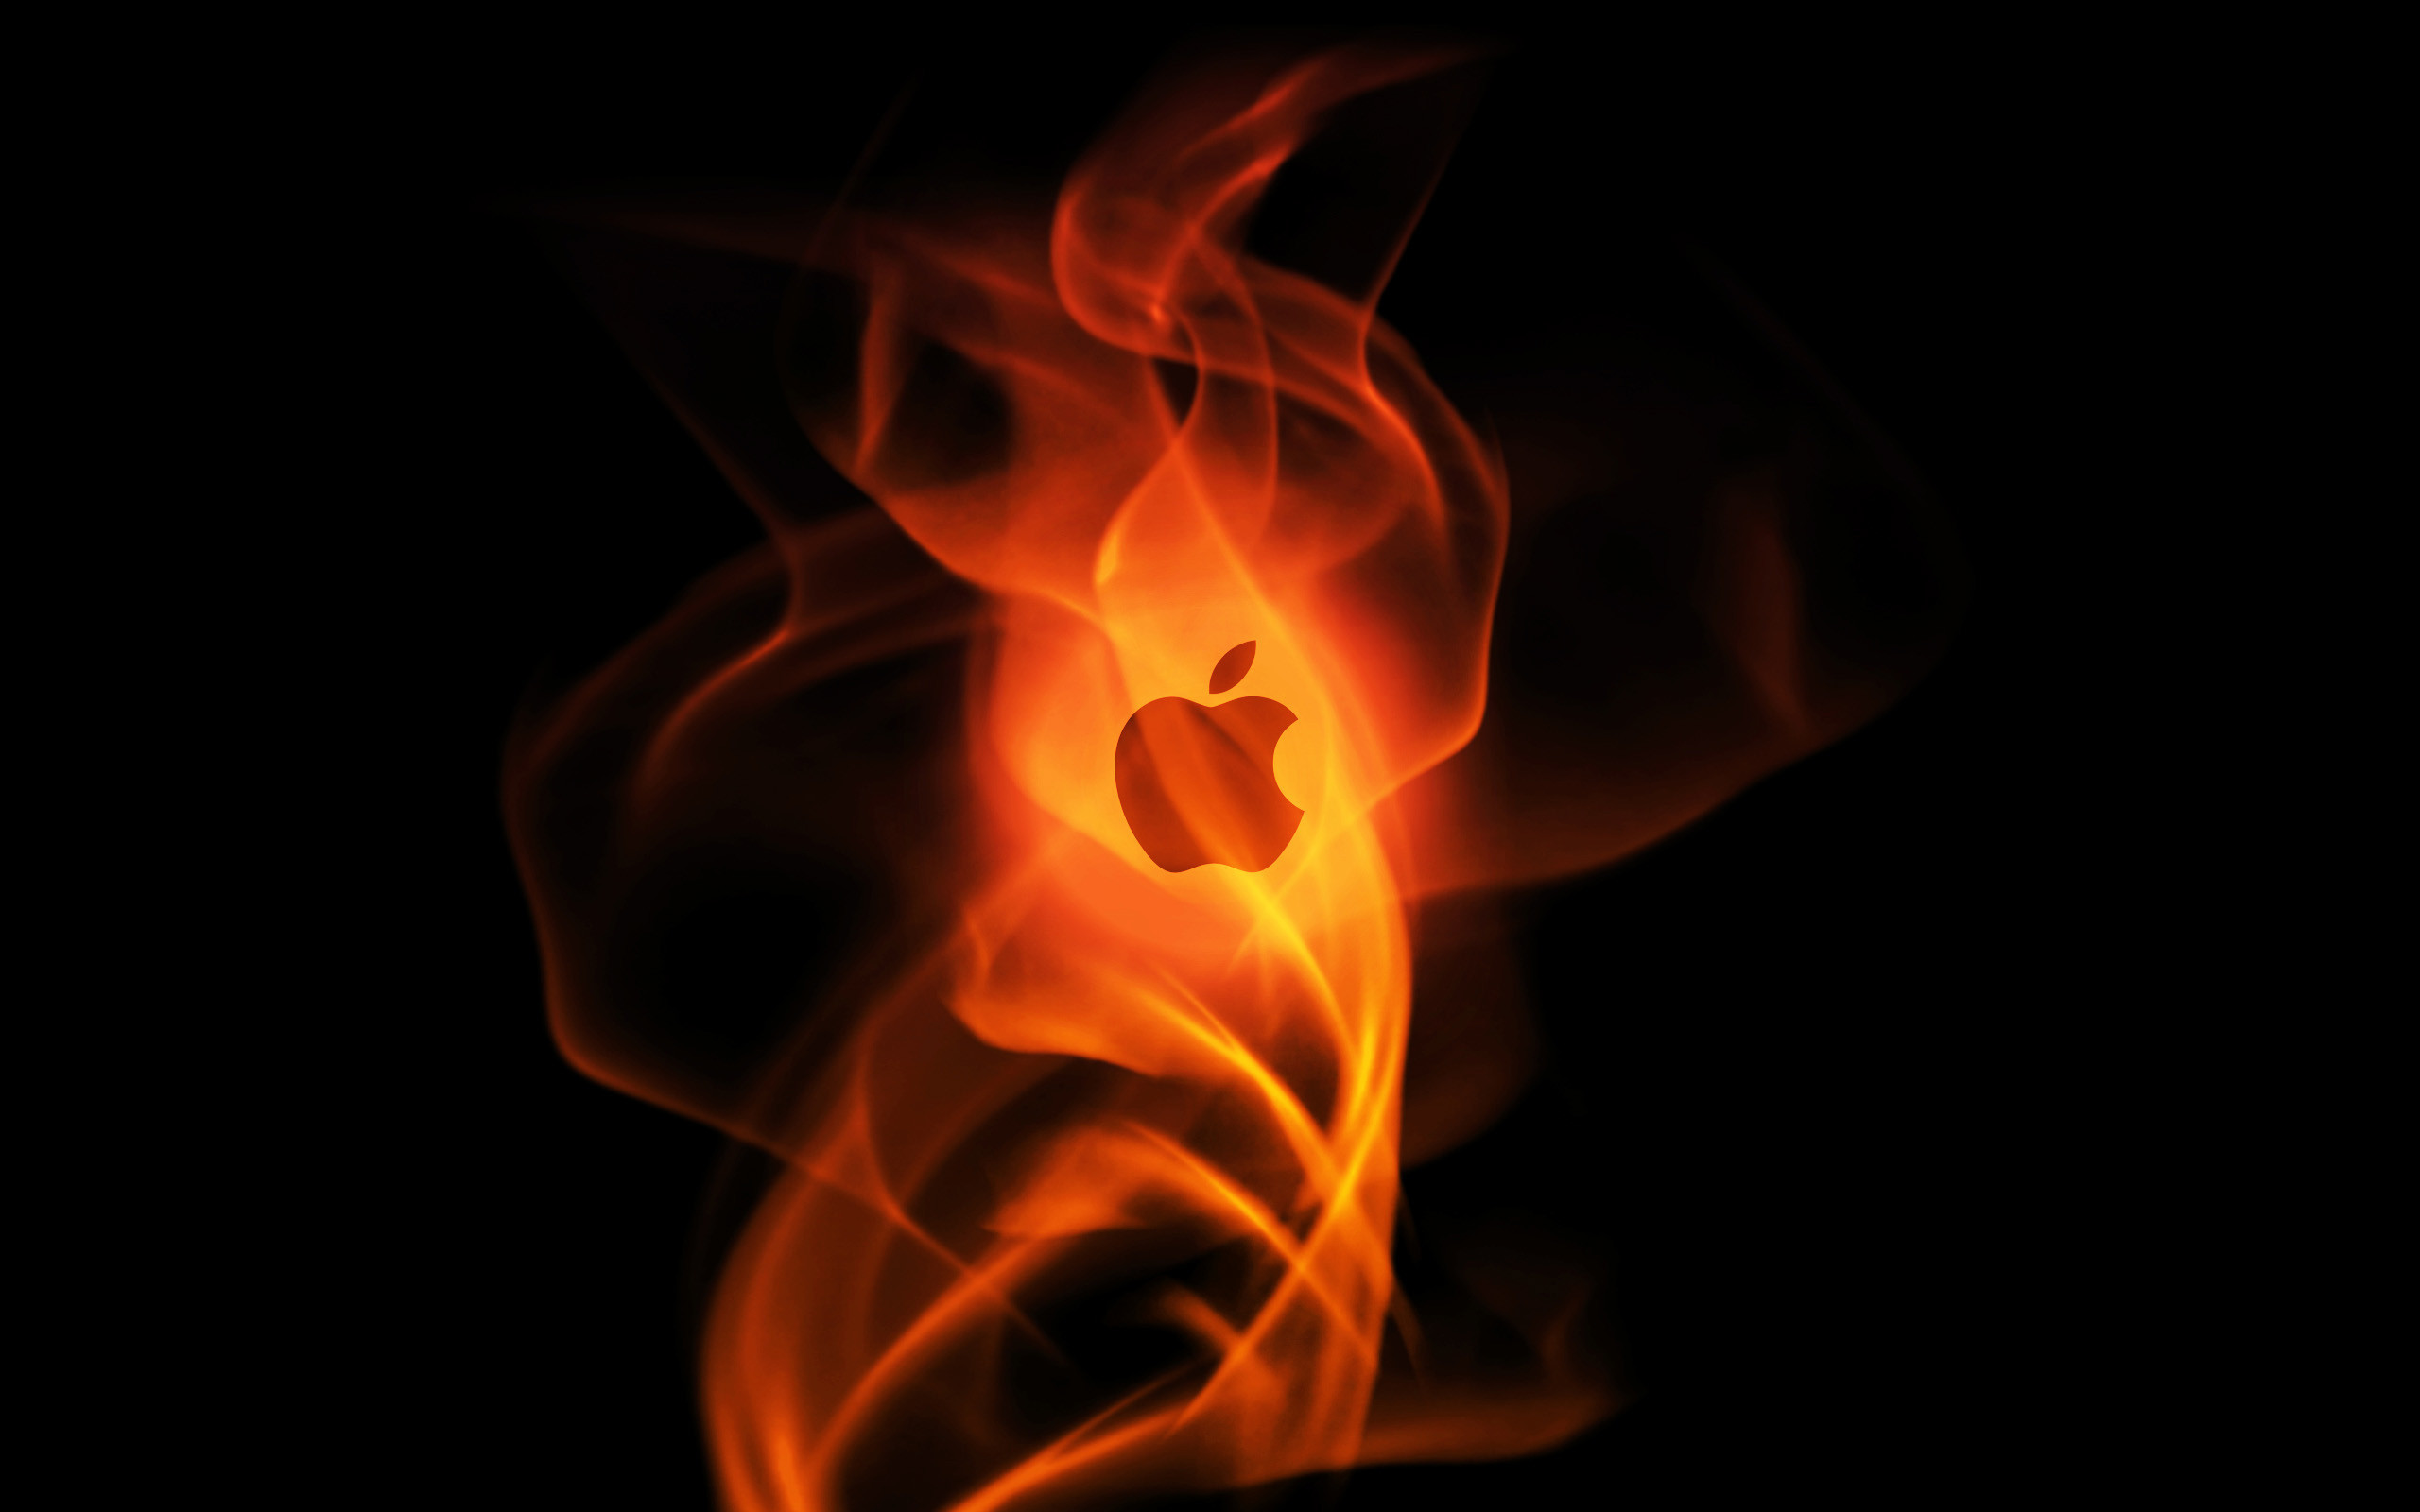 Phone Backgrounds Iphone Wallpapers Apple Logo Apple Fire Wallpaper Hd 1080p 644115 Hd Wallpaper Backgrounds Download